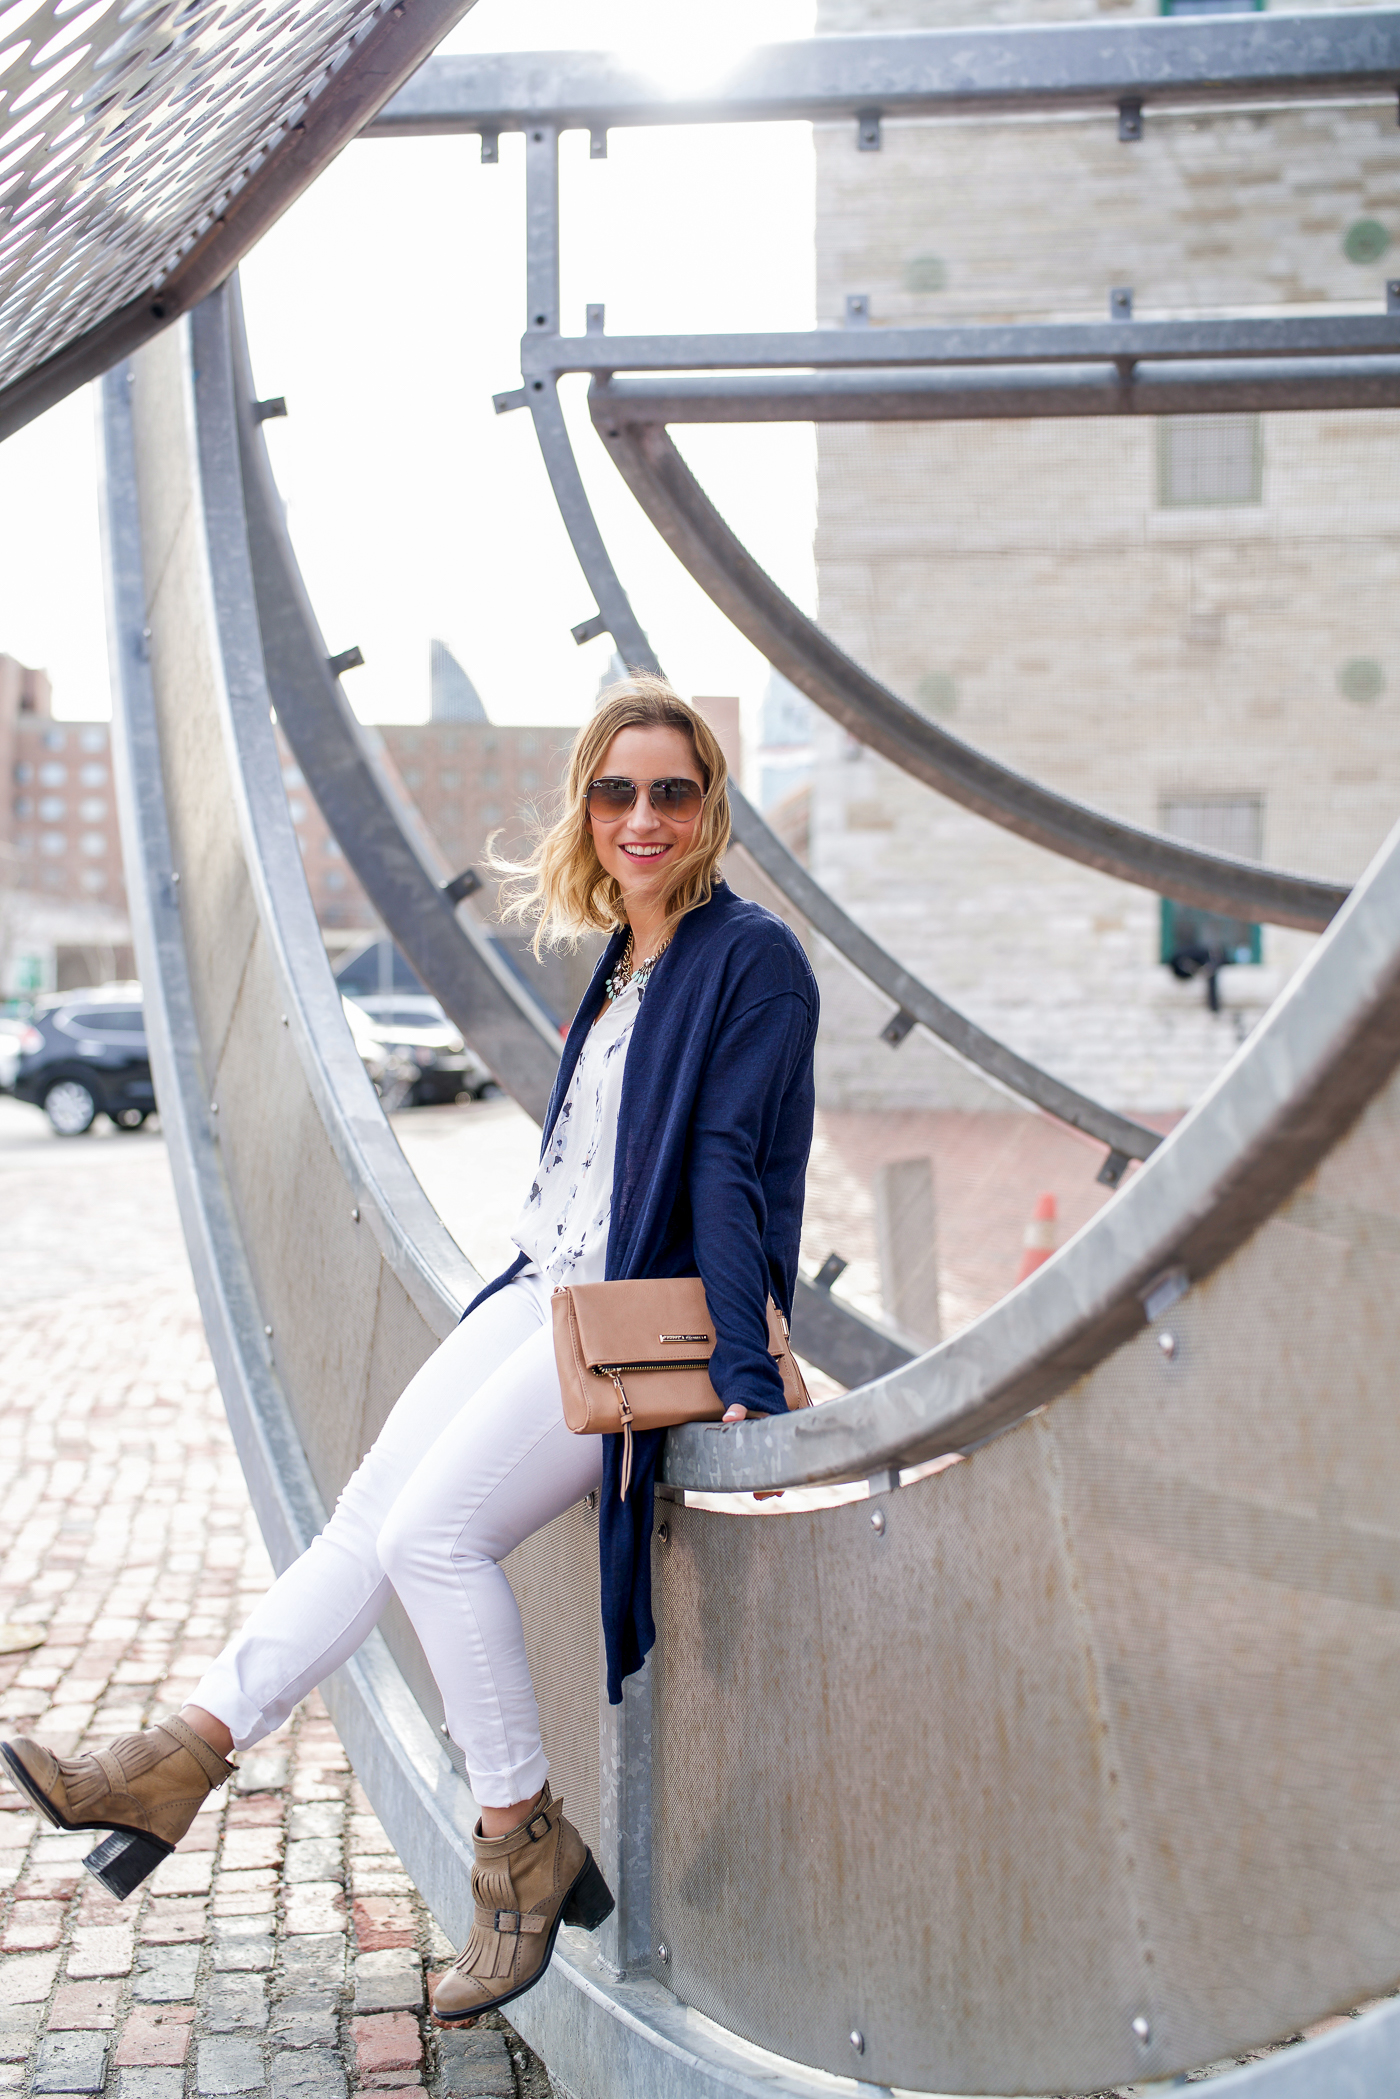 Canadian fashion and lifestyle blogger, Jackie Goldhar of Something About That, is sharing a spring outfit with white jeans and a navy cardigan, that she wore in Toronto's Distillery District